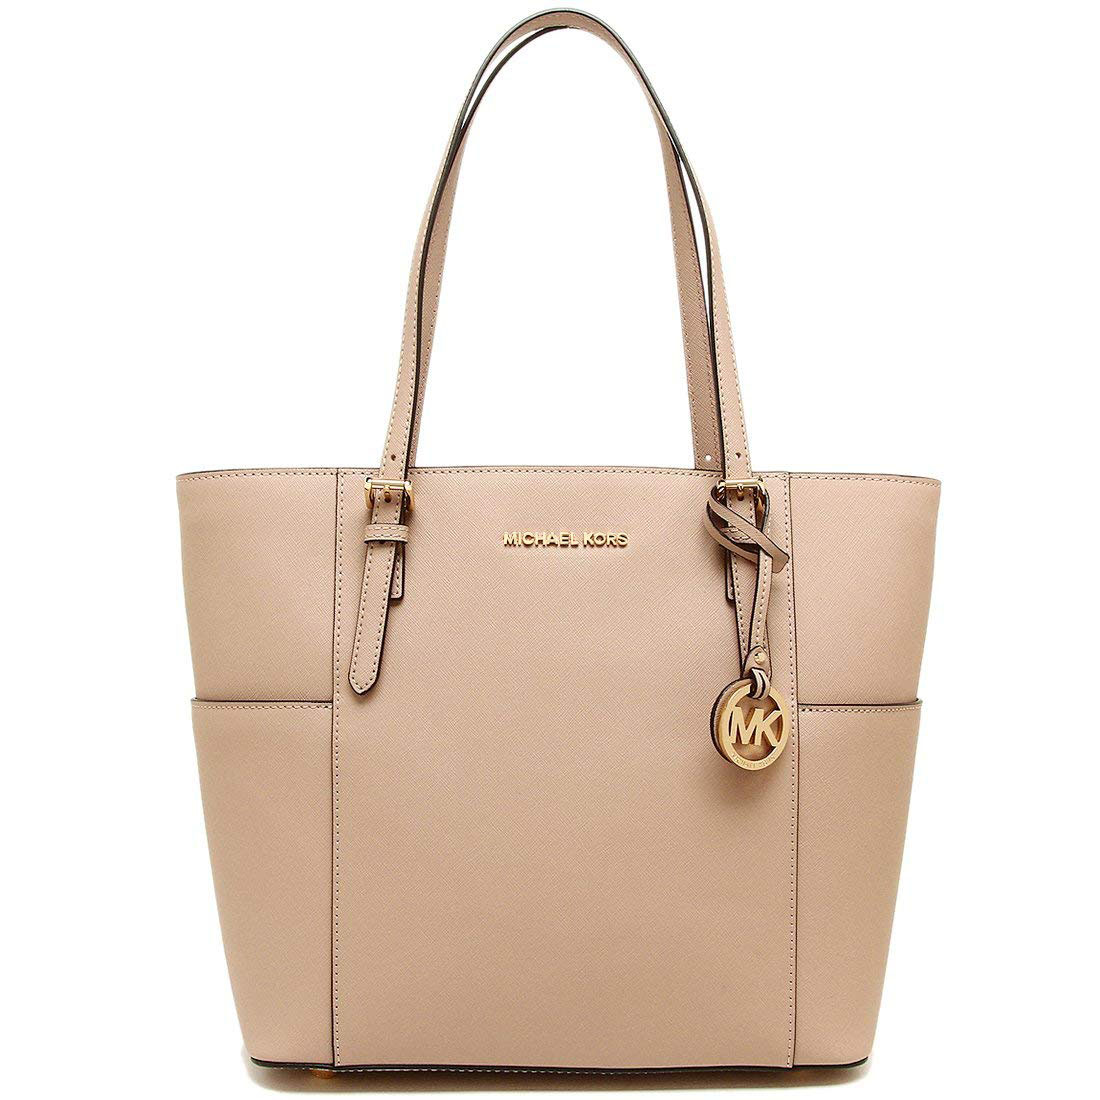 Michael Kors Jet Set Travel Large Leather Tote Butternut Beige # 30T6GTVT3L